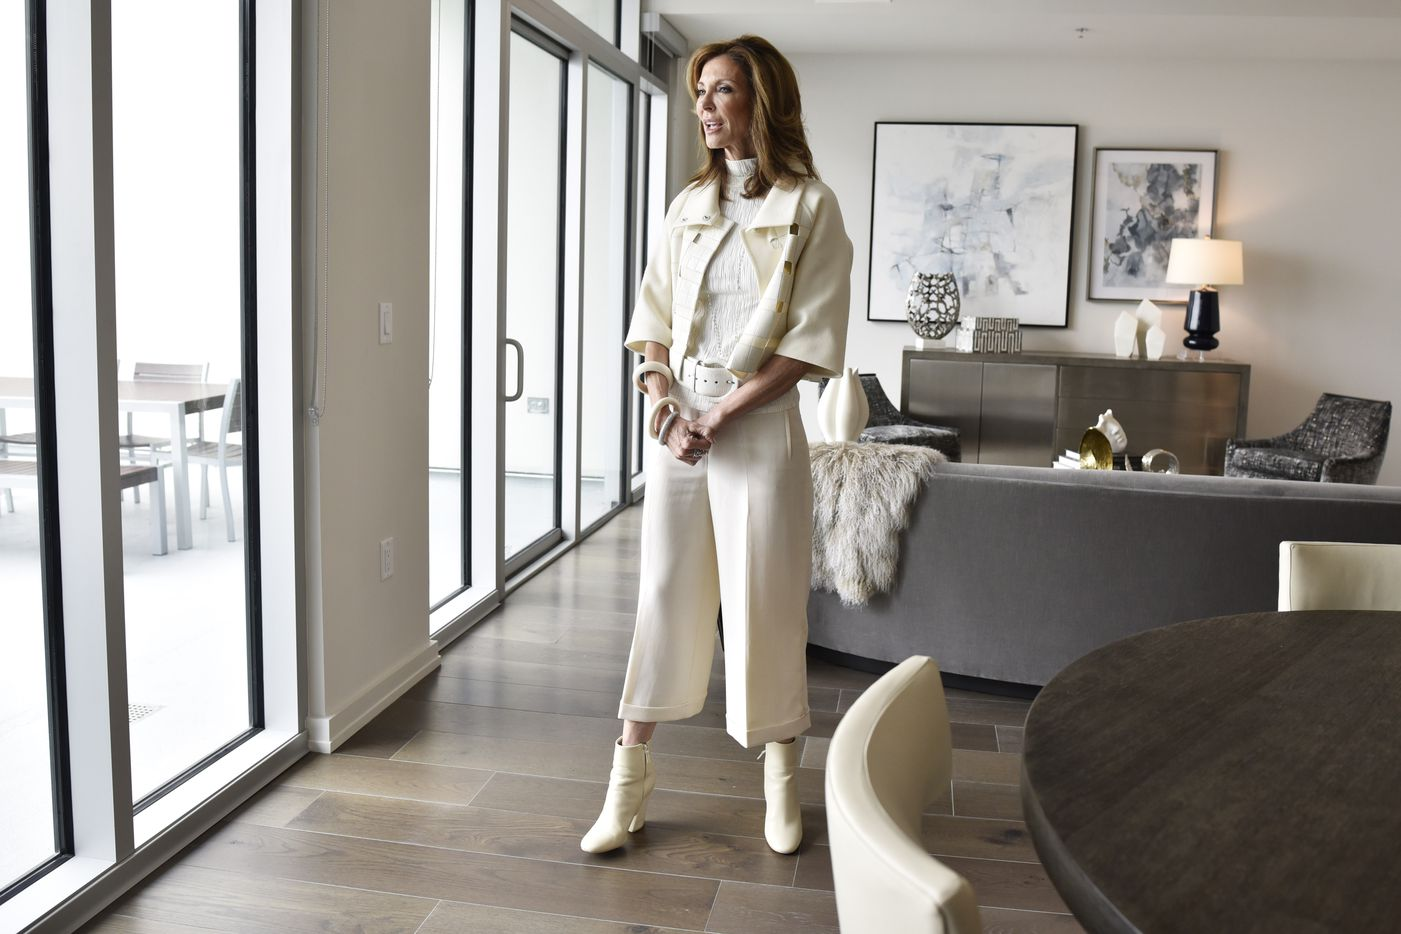 Charlotte Jones conducts a tour inside a model one bedroom apartment at the Twelve Cowboys Way luxury residential tower at the Star in Frisco.